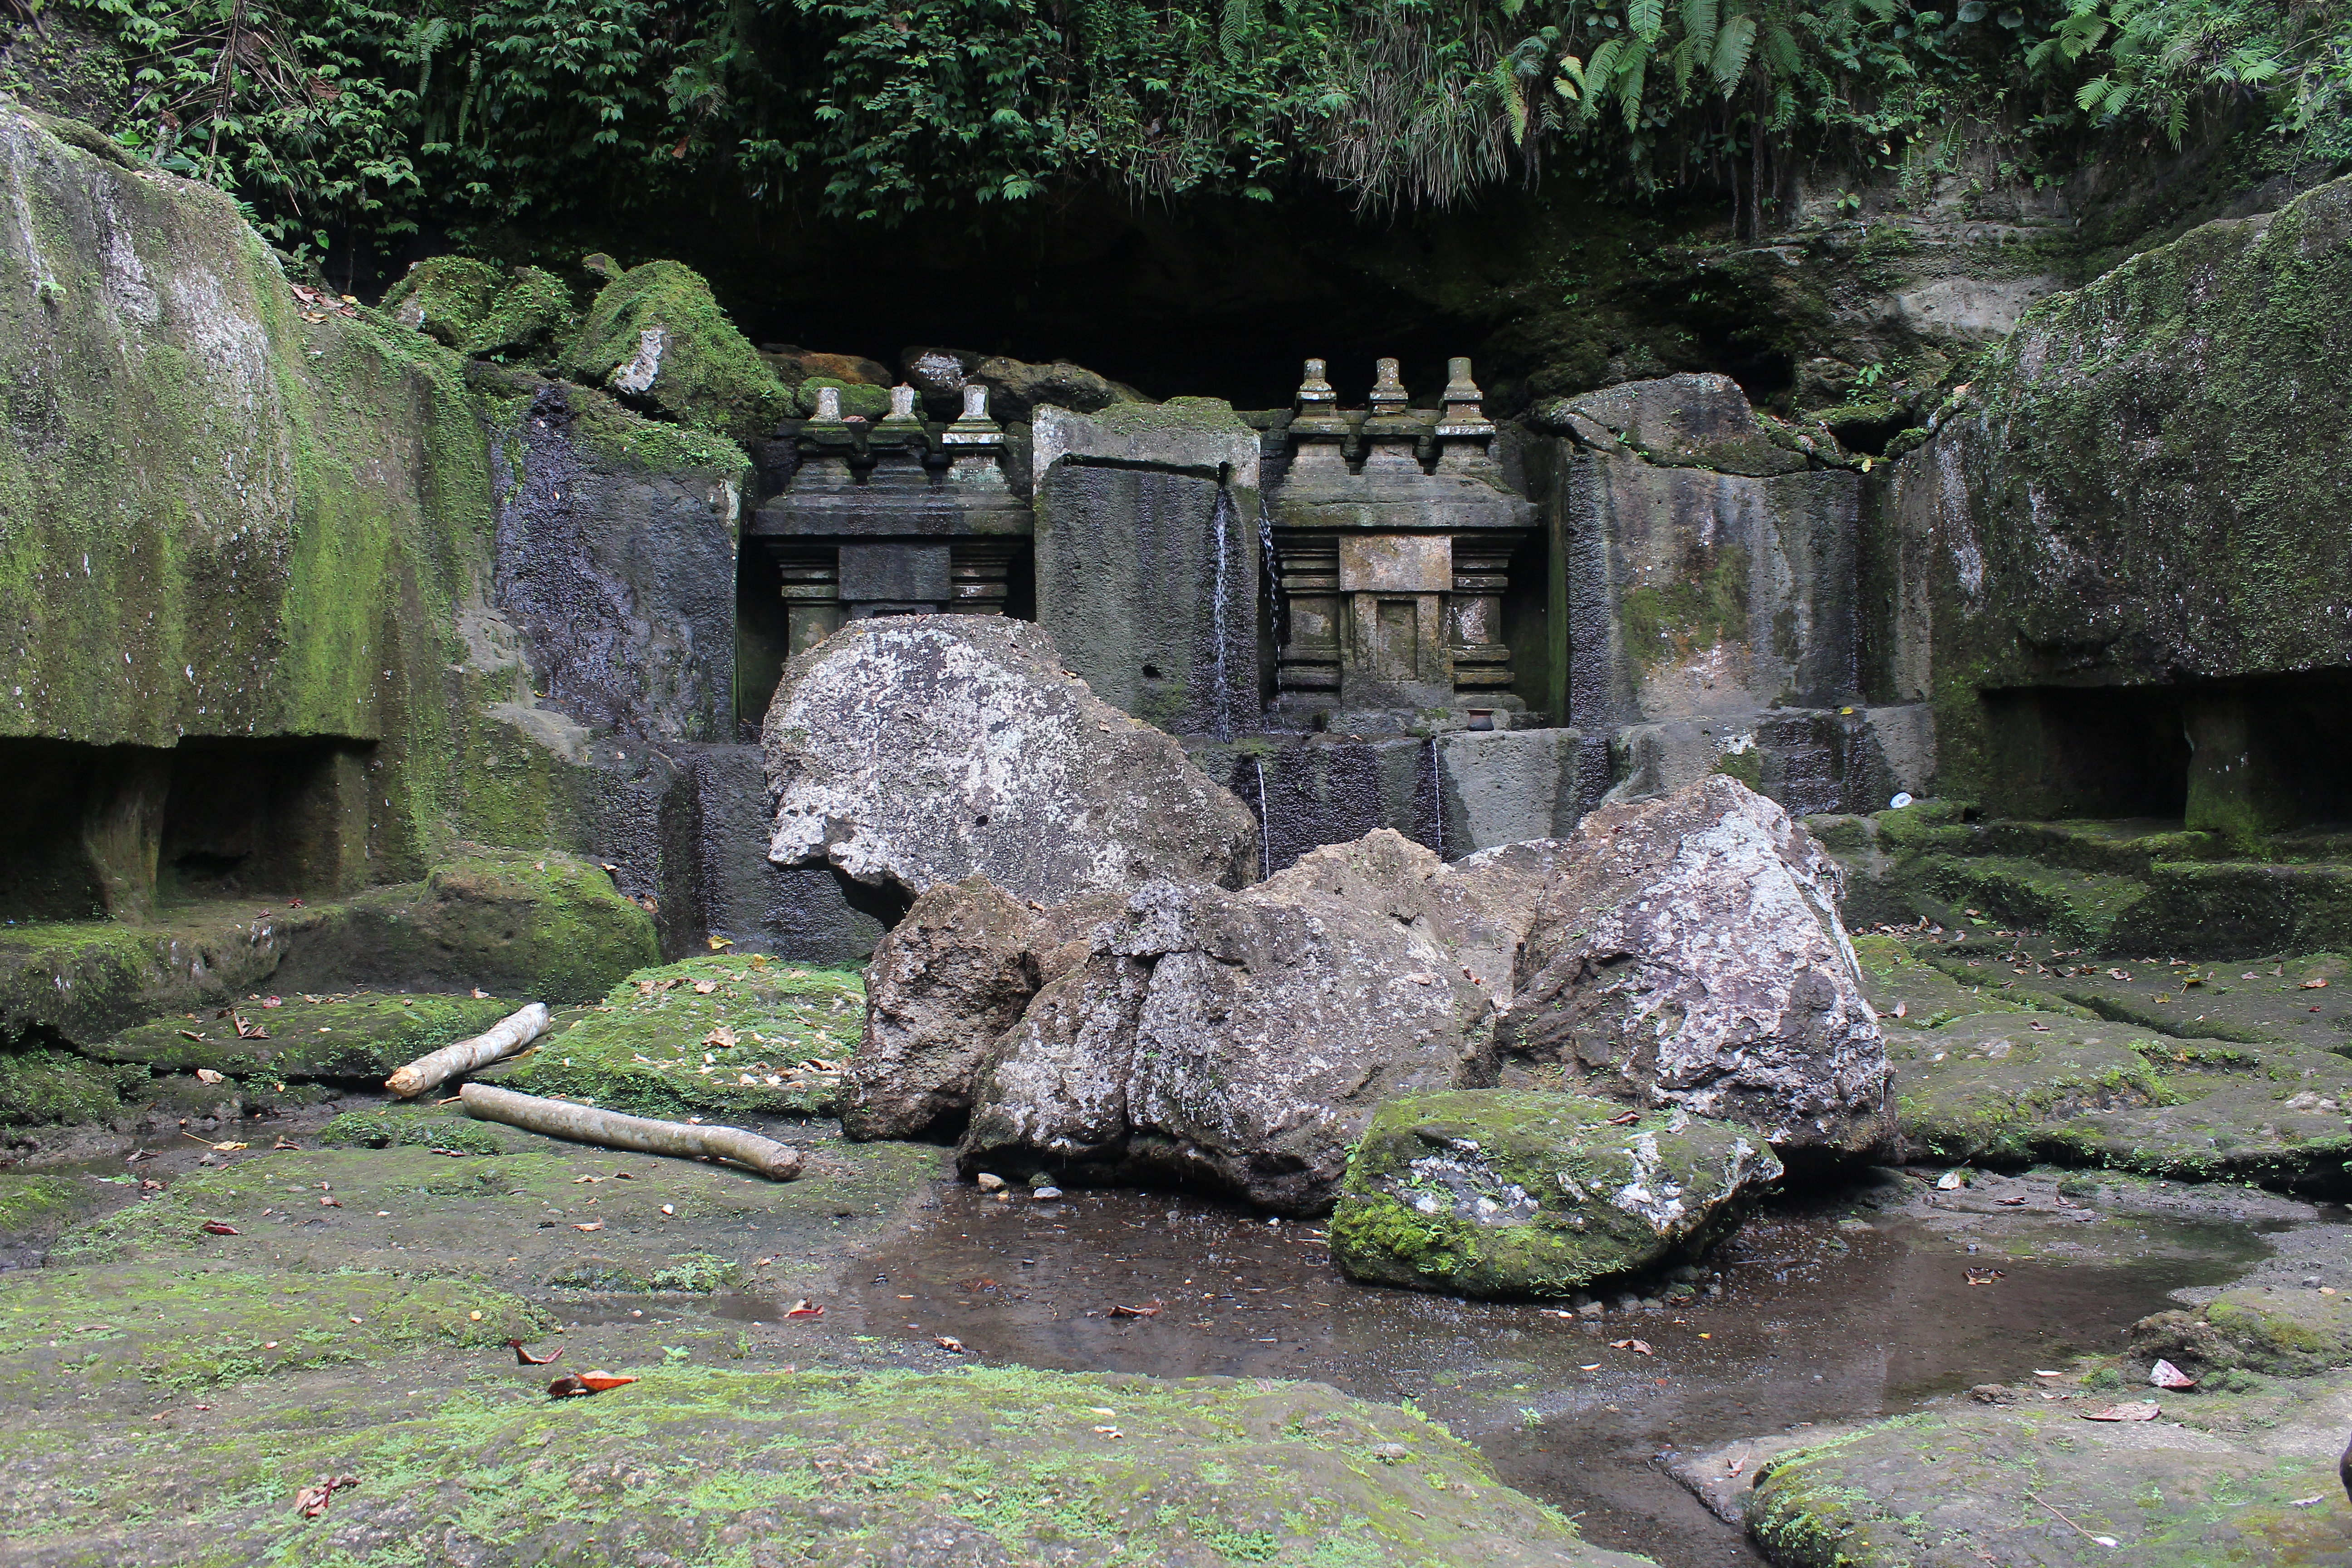 Rock-cut shrine, partially rouined, with caves, a river below